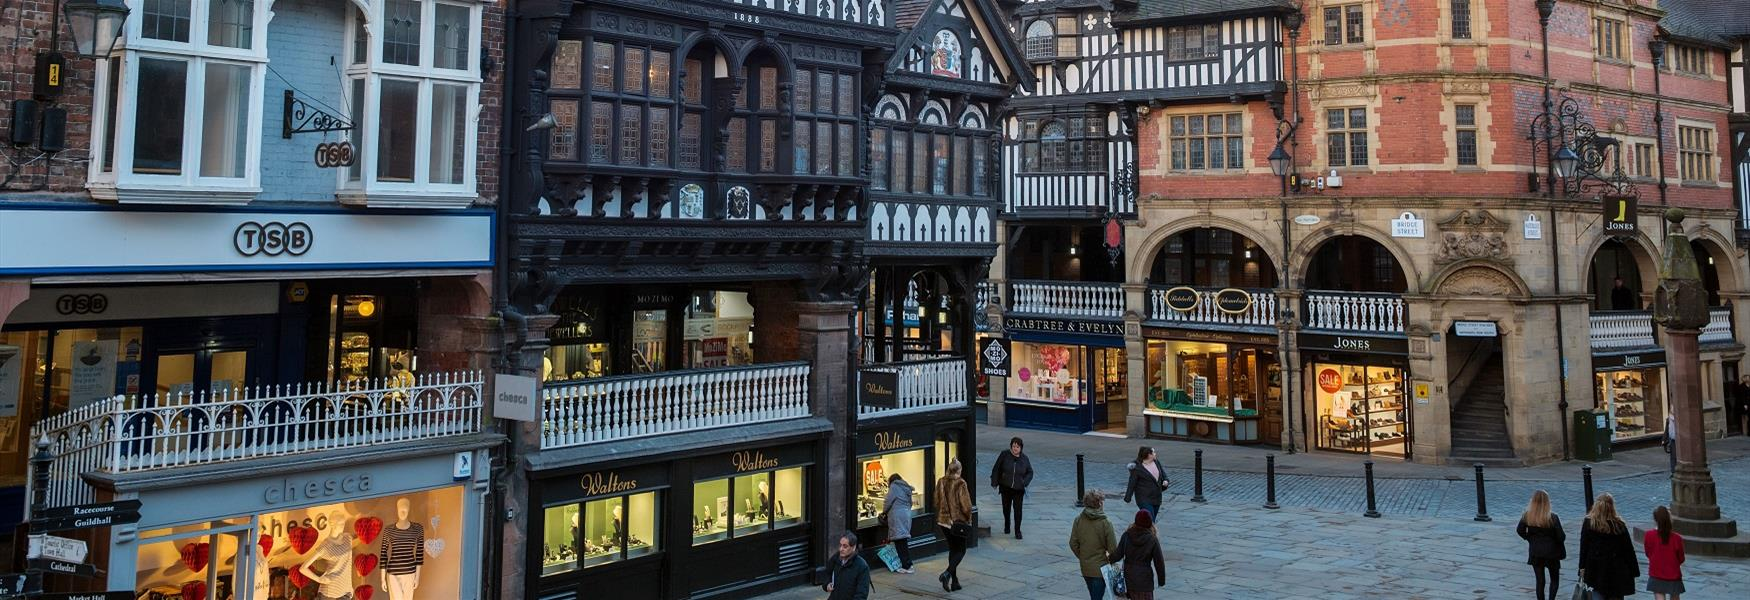 Shops on the Rows, Chester